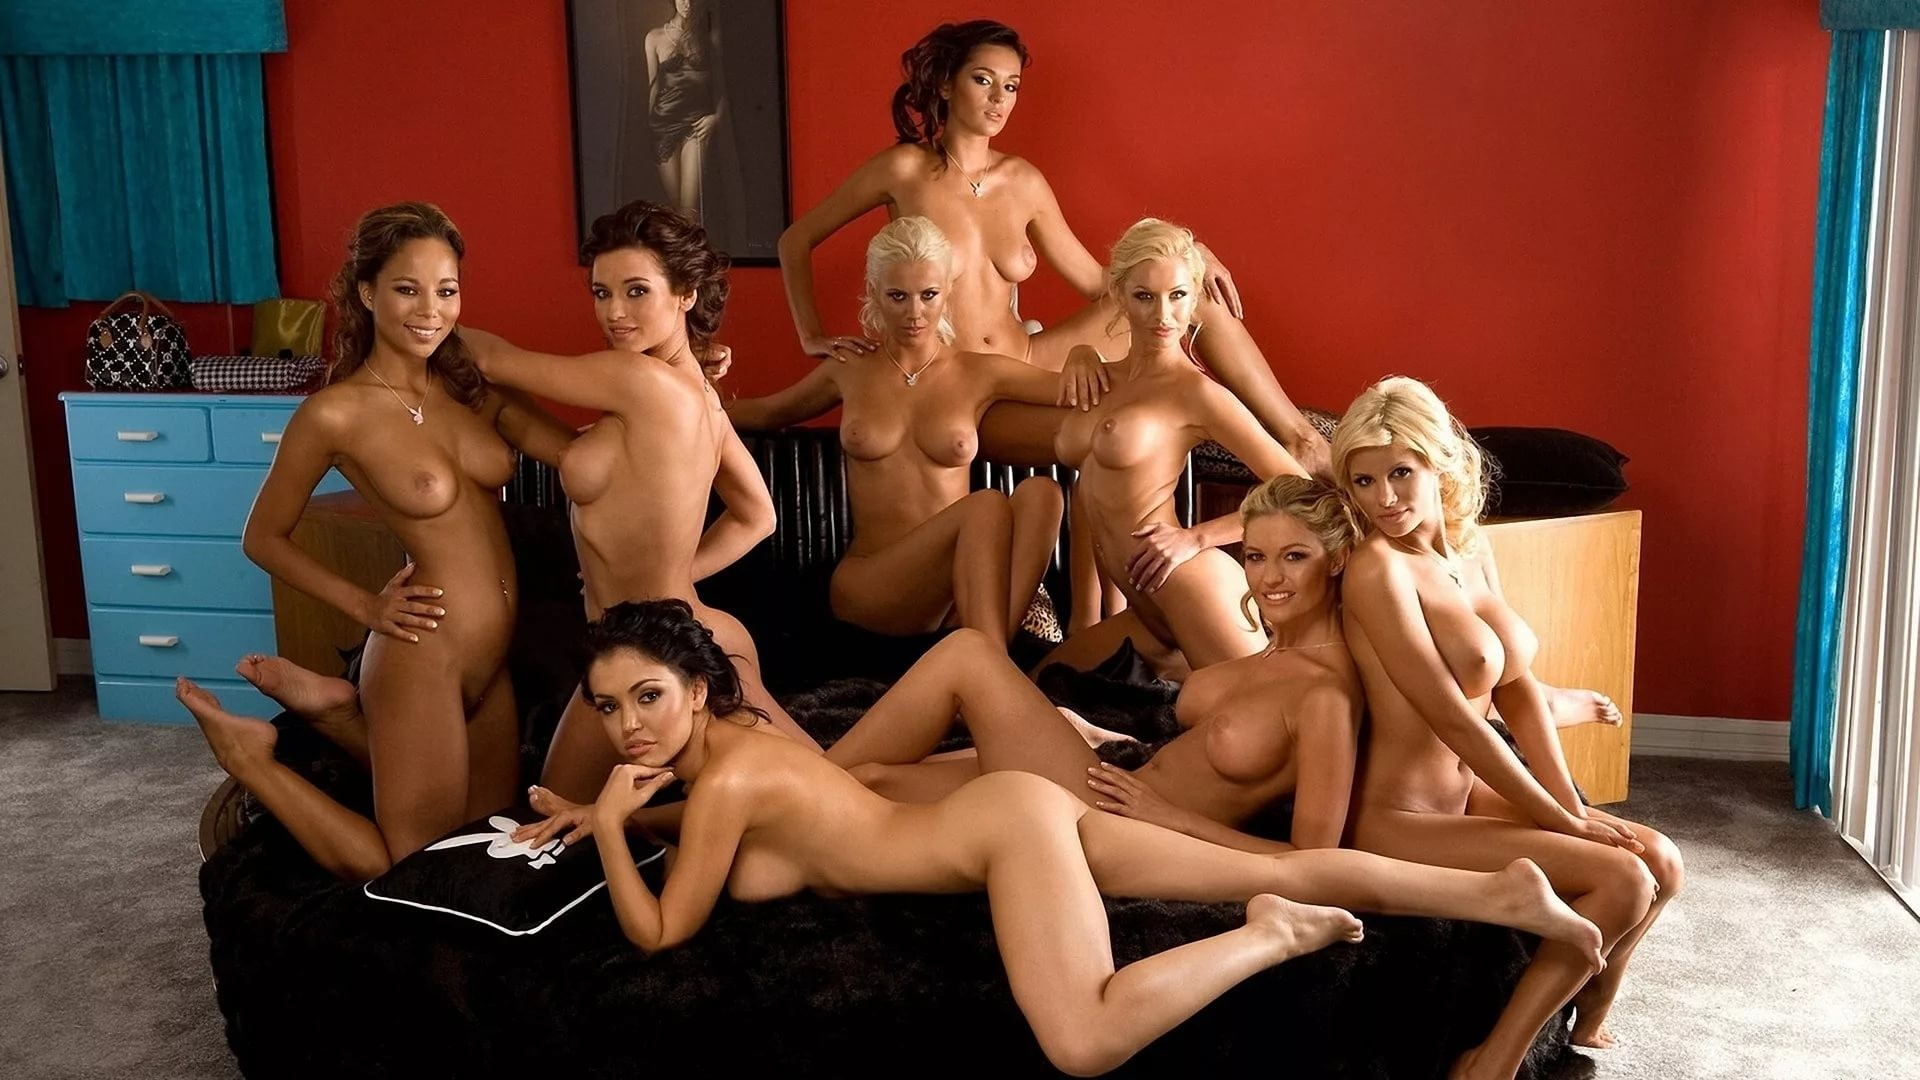 playboys-girls-naked-sex-facebook-sex-photo